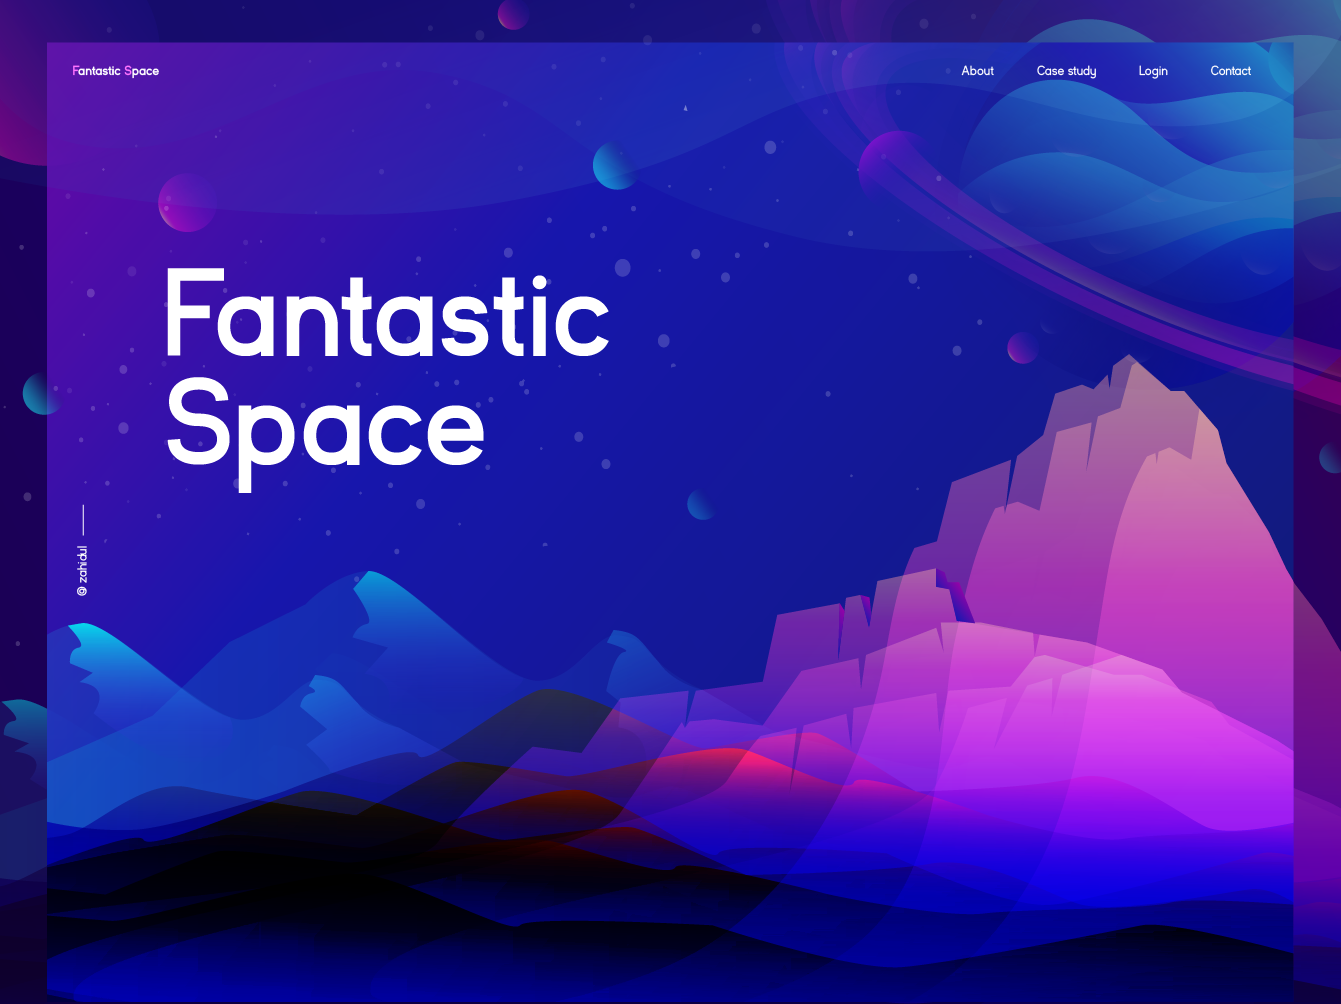 Fantastic Space Illustration by Zahidul